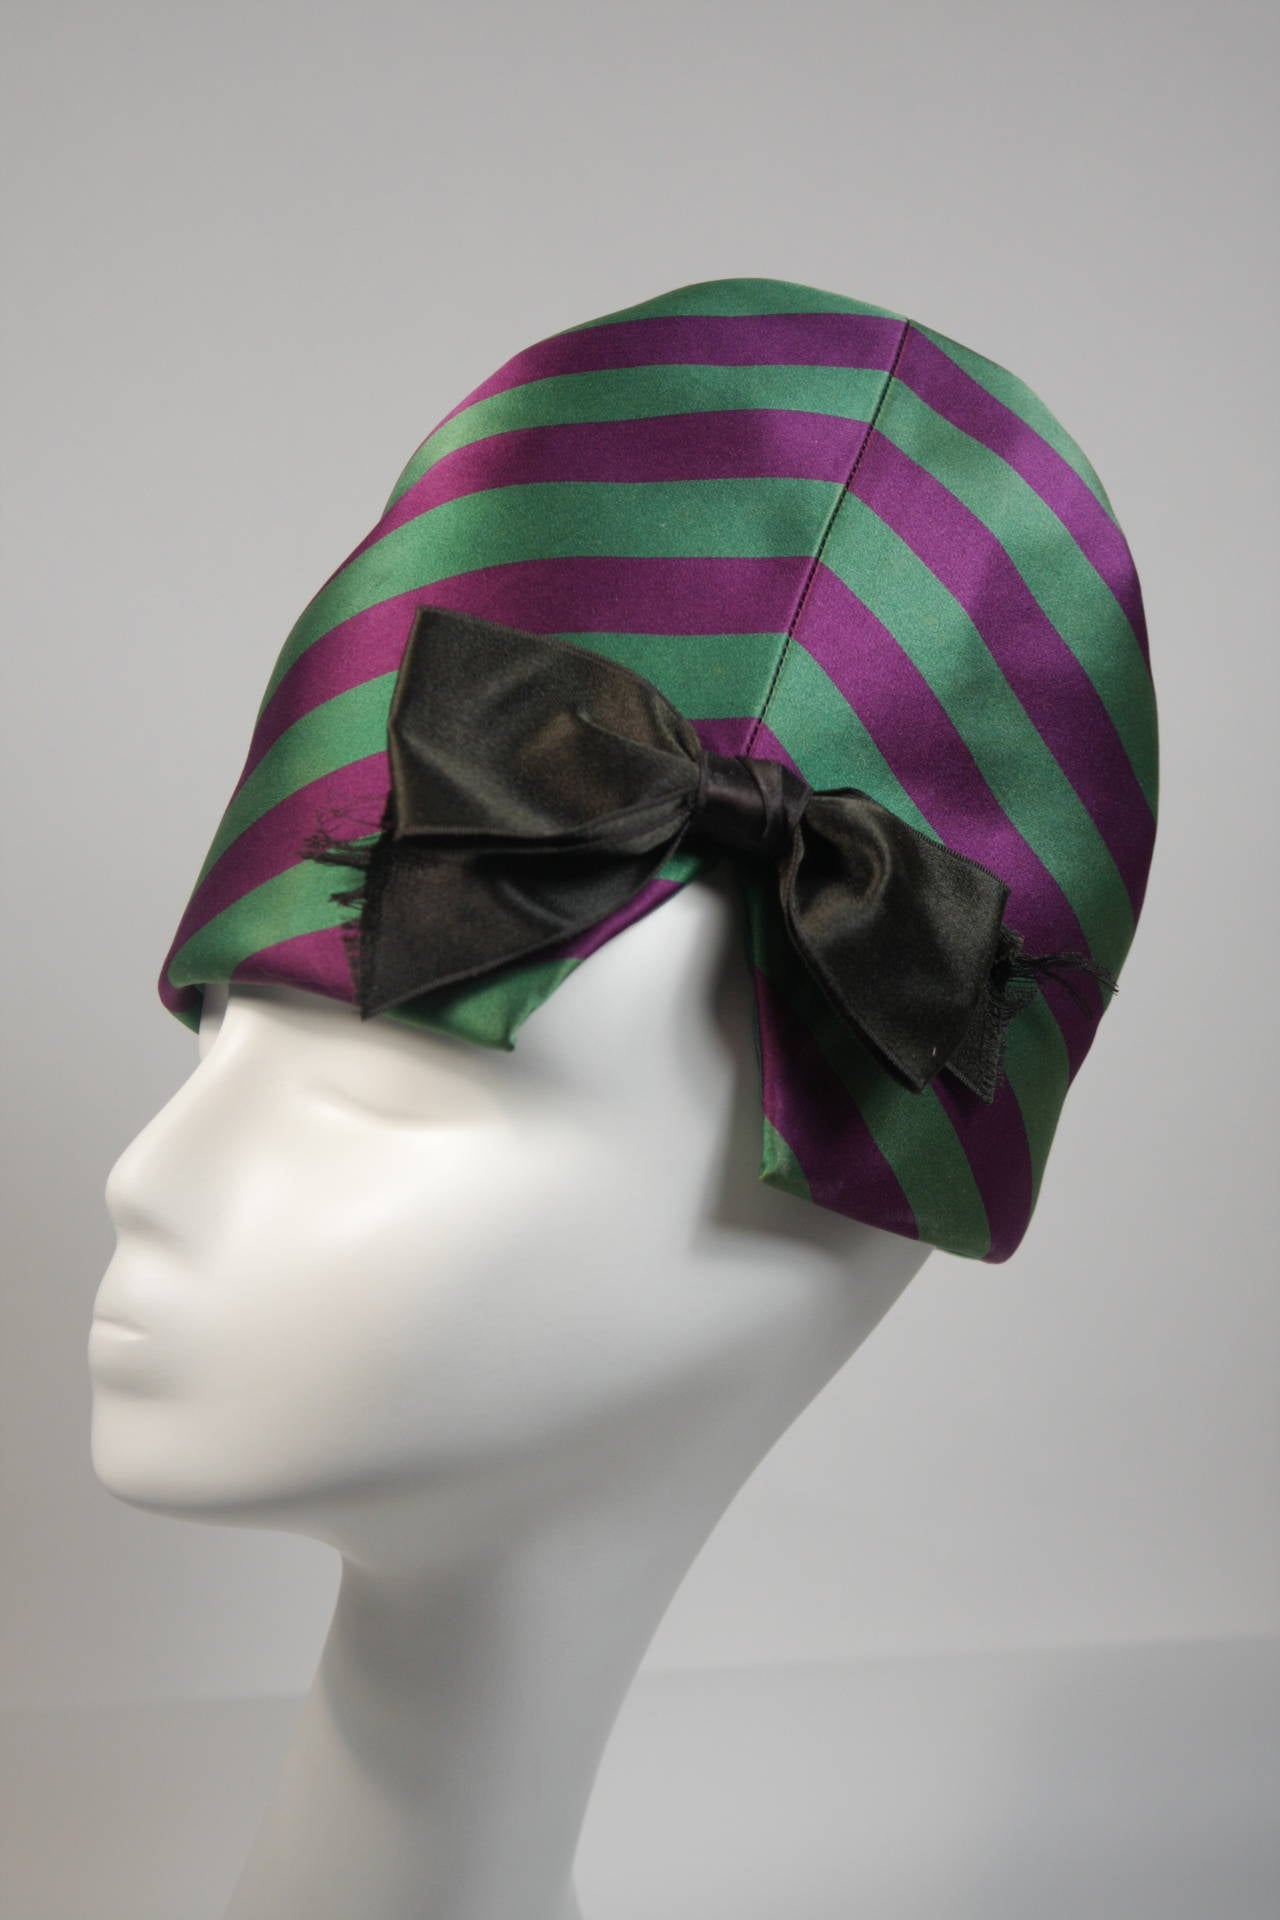 Yves Saint Laurent Rive Gauche Purple and Green Silk Rouched Hat with Bow 5